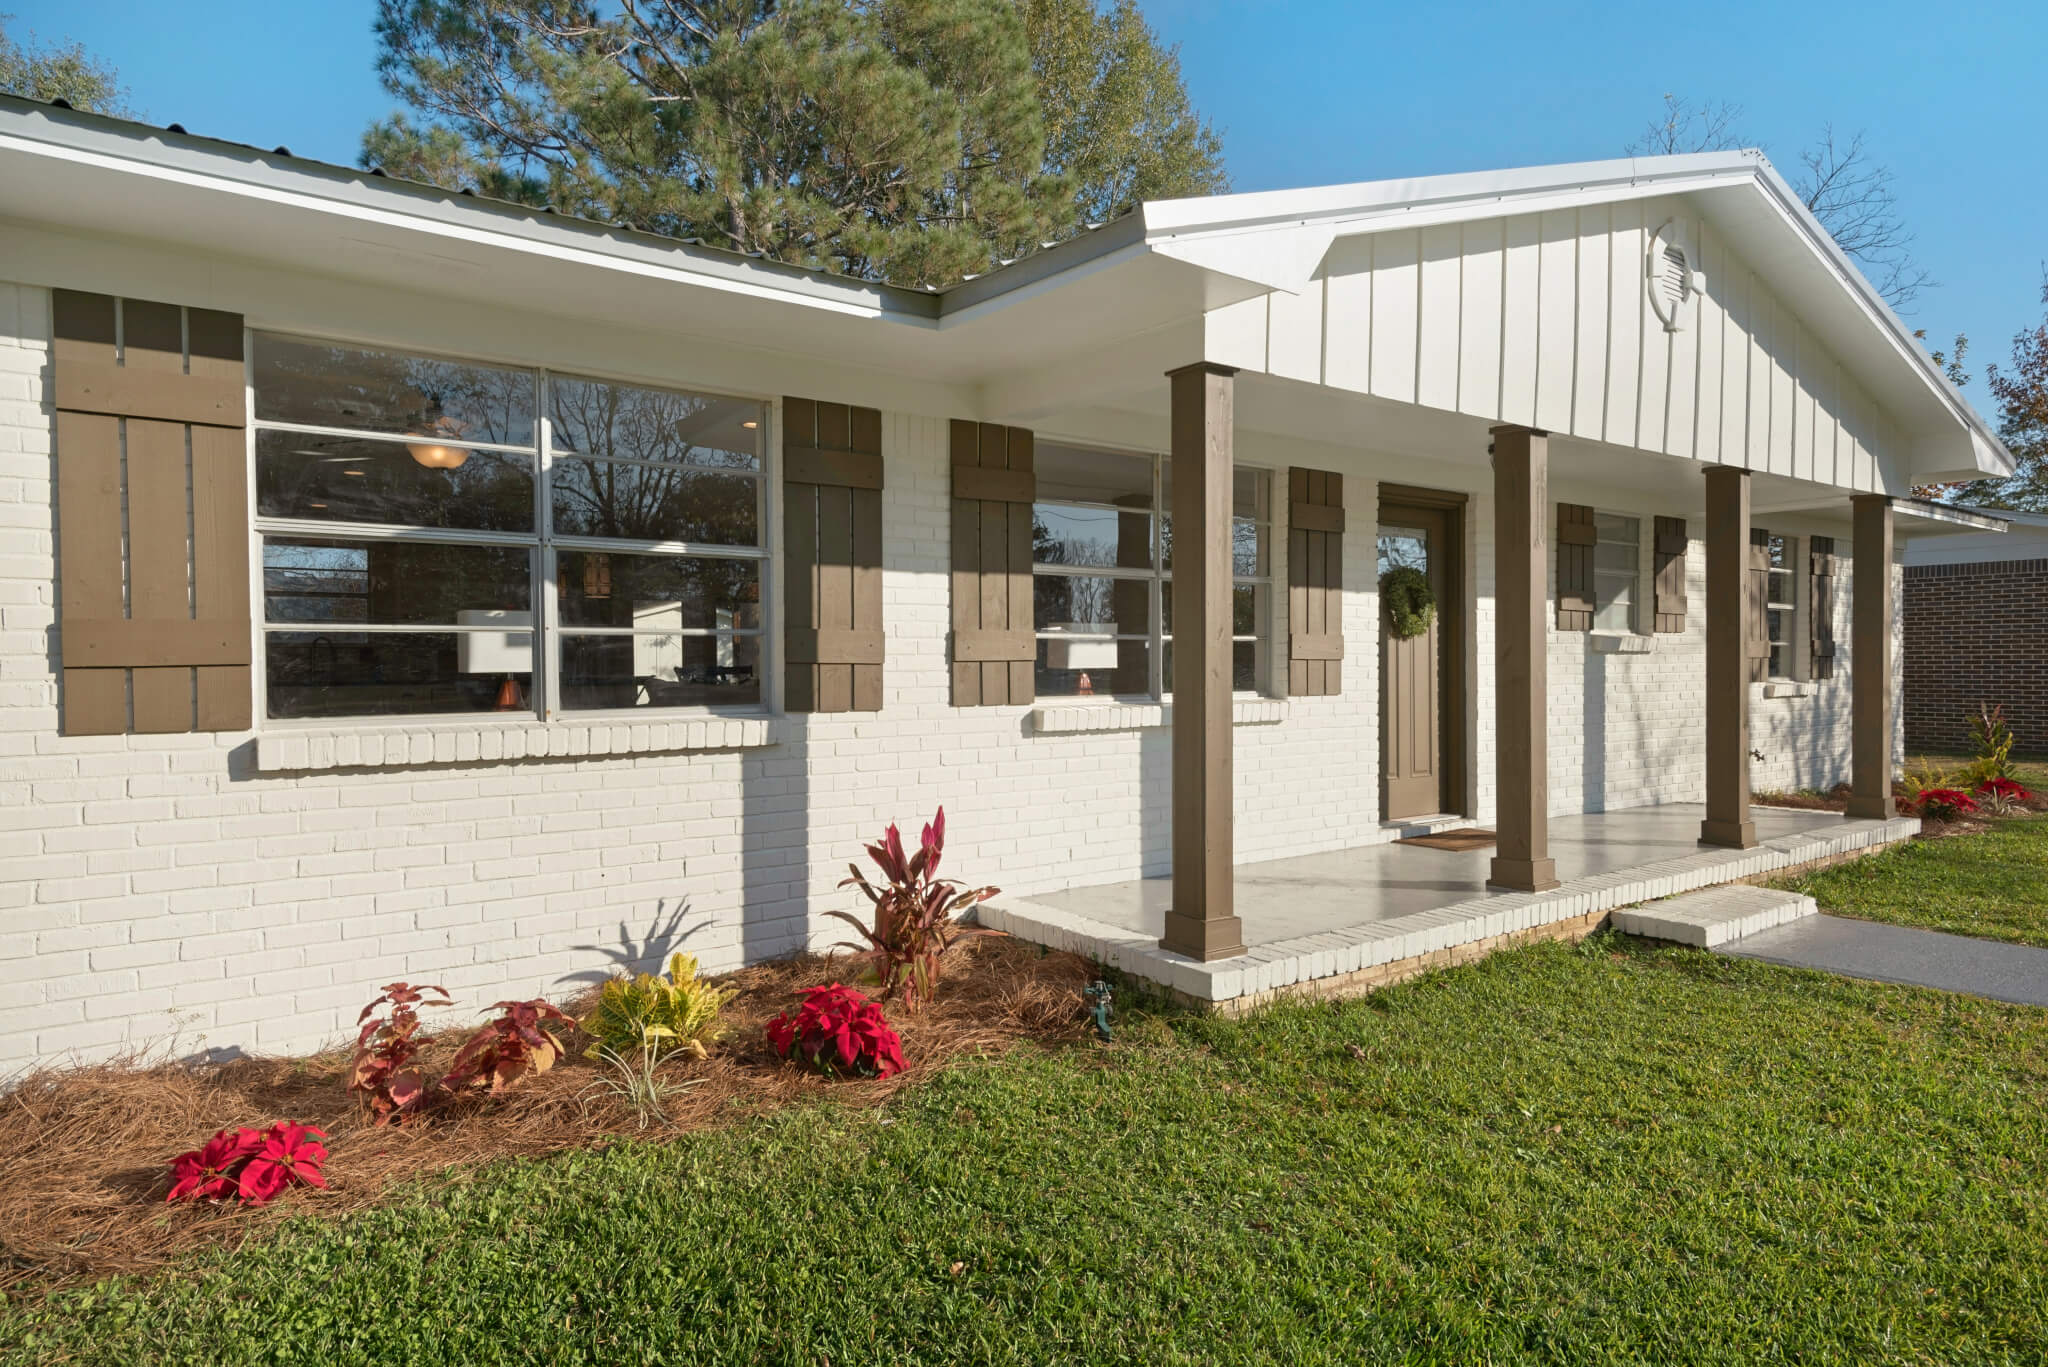 Homes for Sale 1000-1650 square feet 2+BR, 2+BA $190,000-$260,000